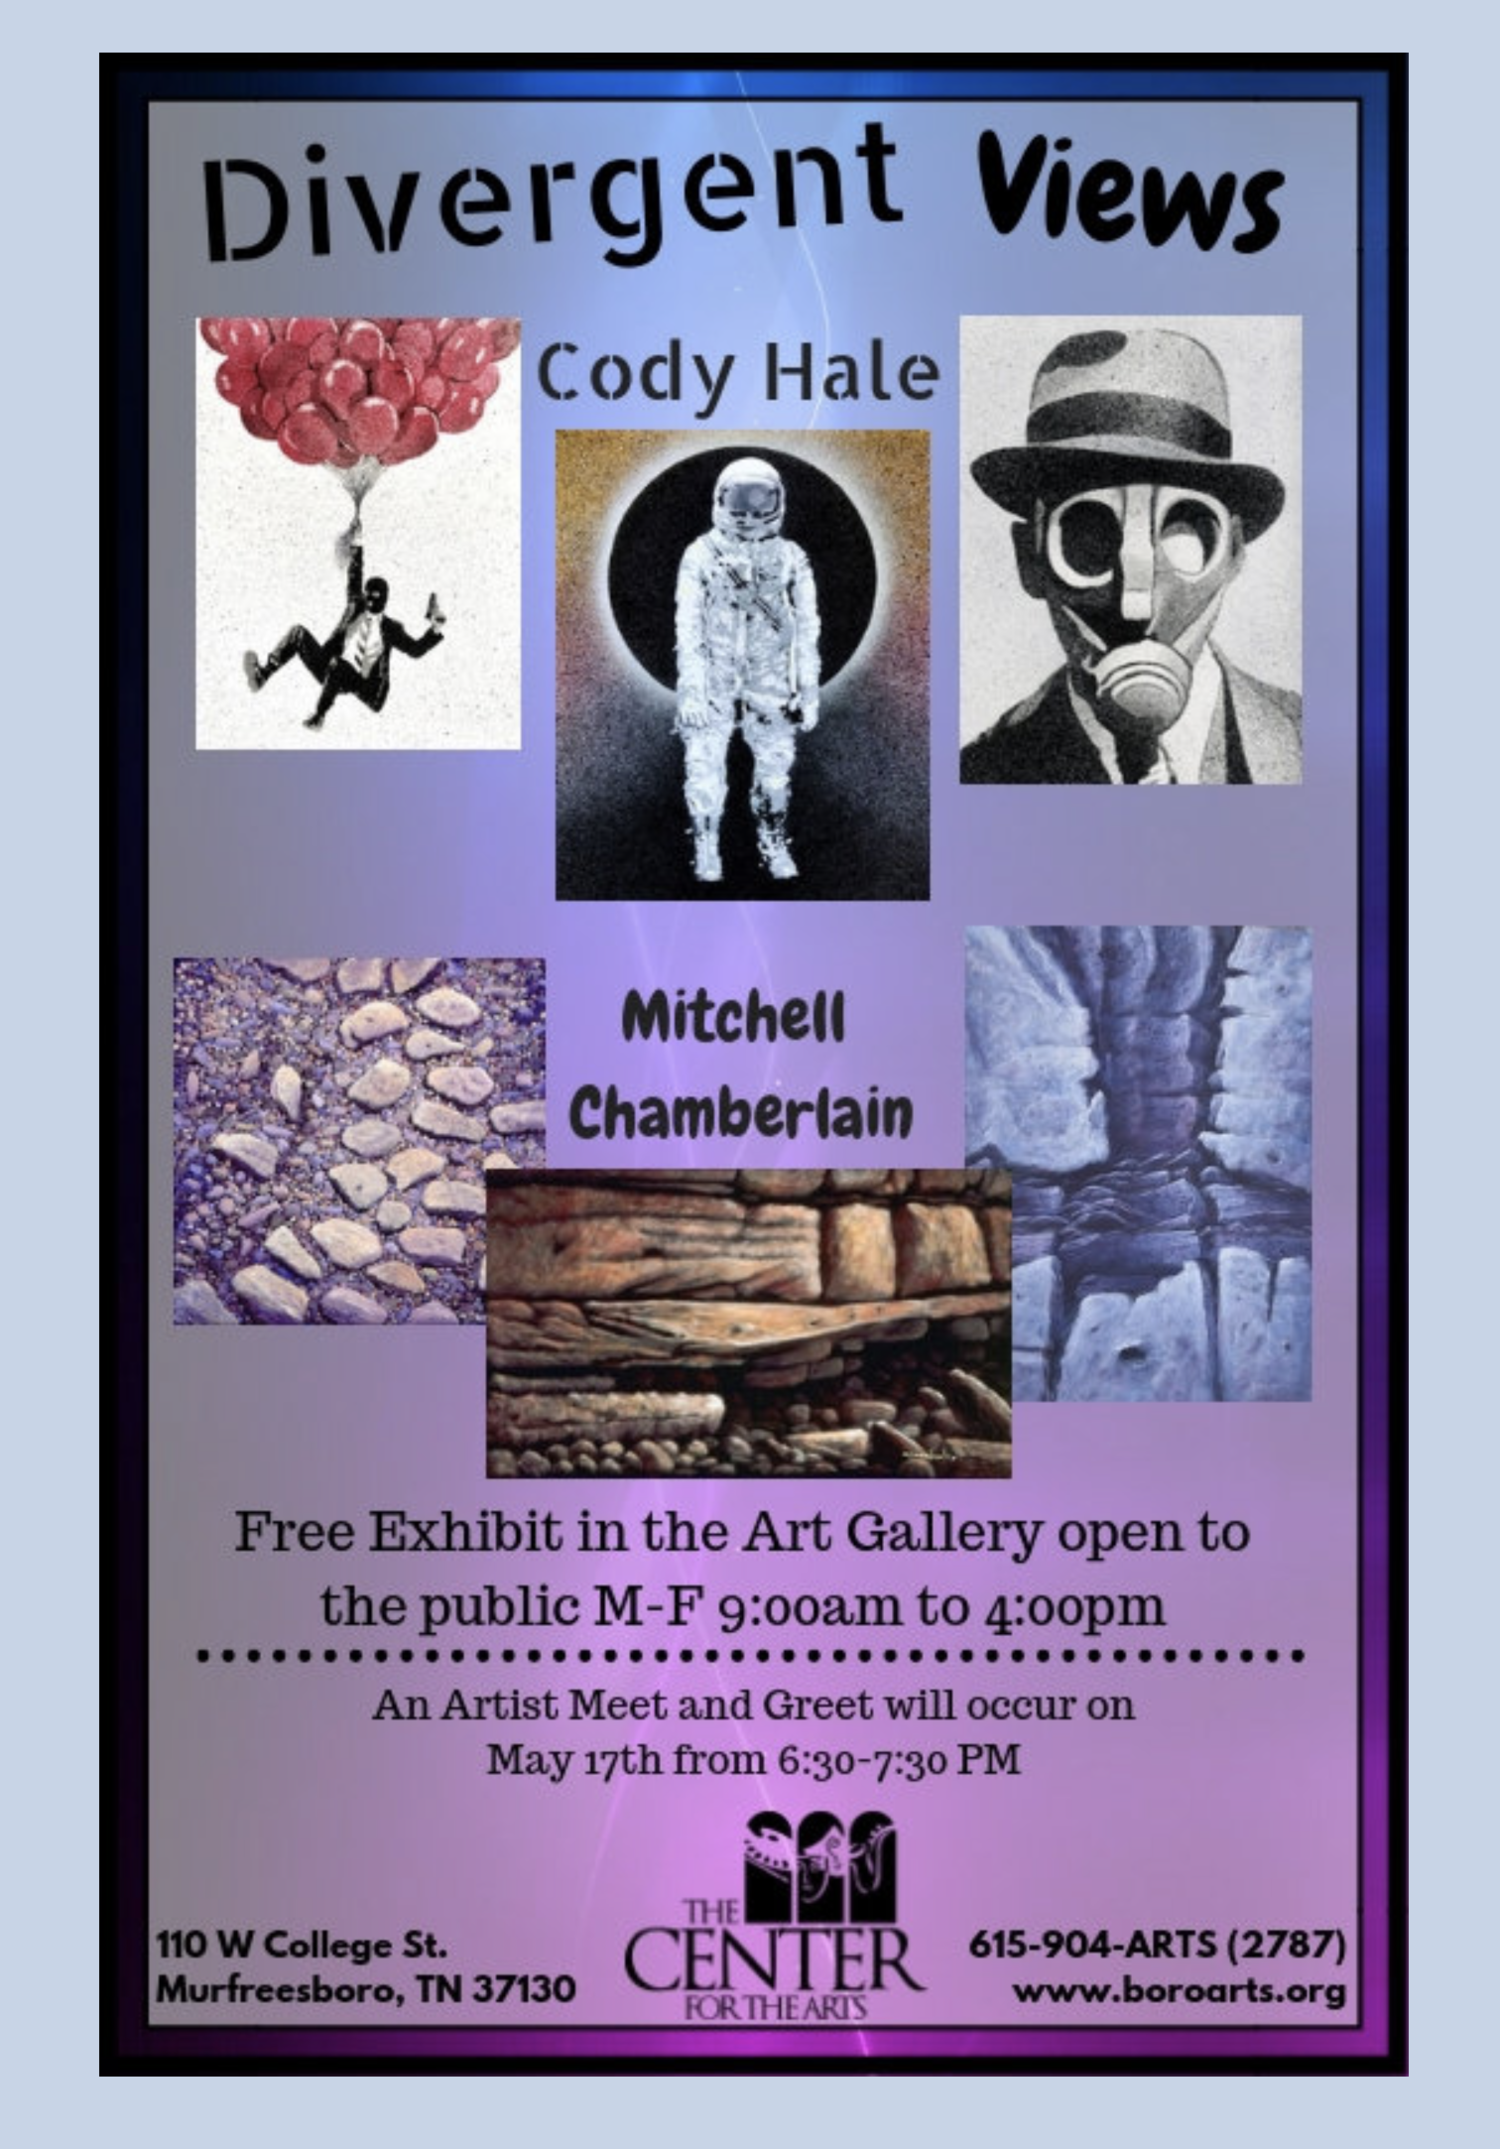 Art Exhibit at The Center For The Arts — Cody Hale Art